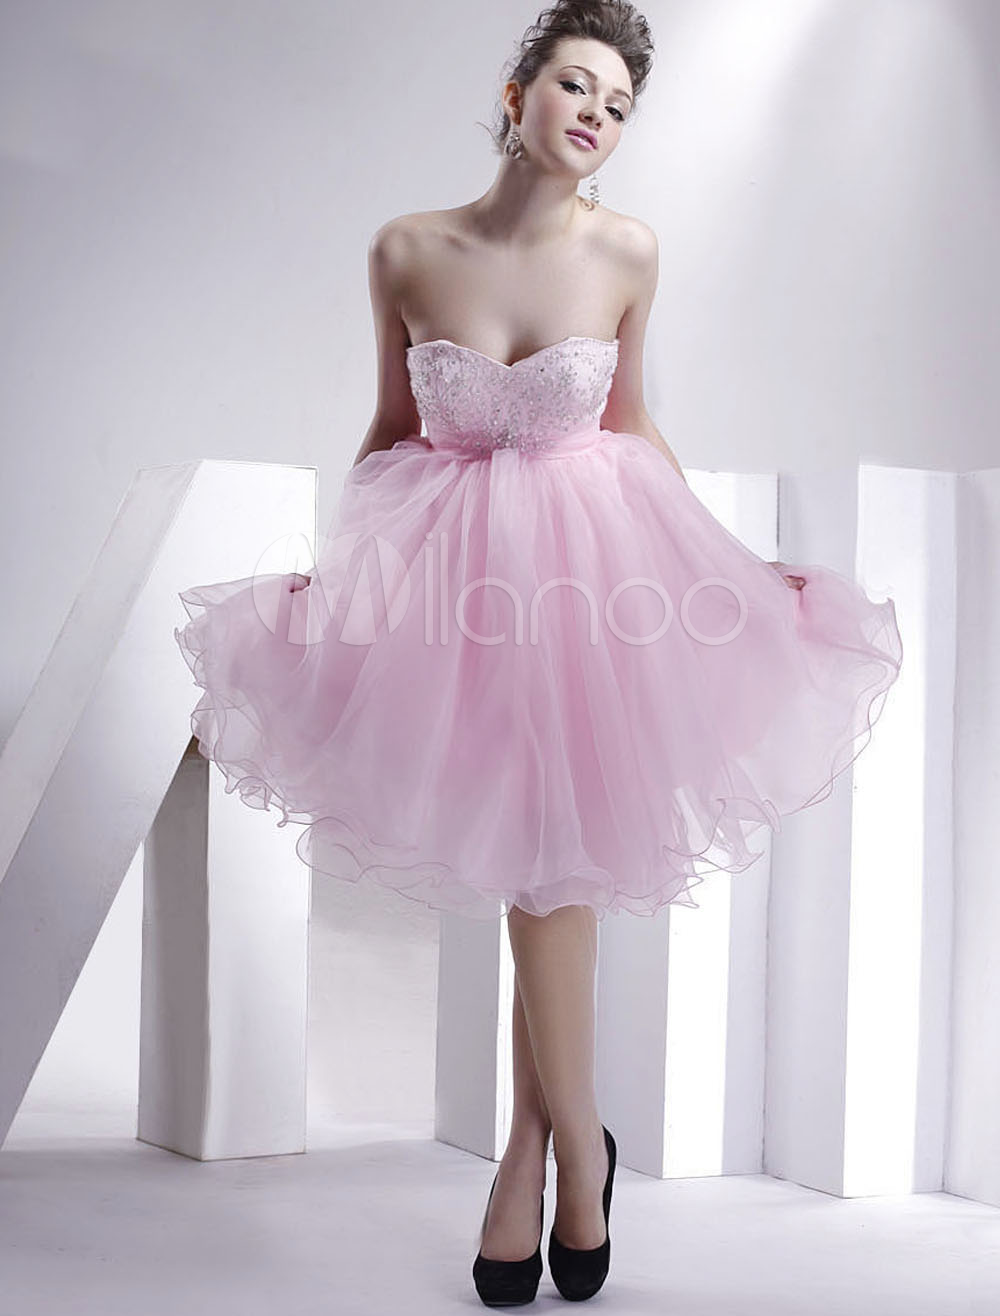 China Wholesale Cocktail Dress - Cute Pink Strapless Sweetheart Beaded Organza Satin Summer Cocktail Homecoming Dress